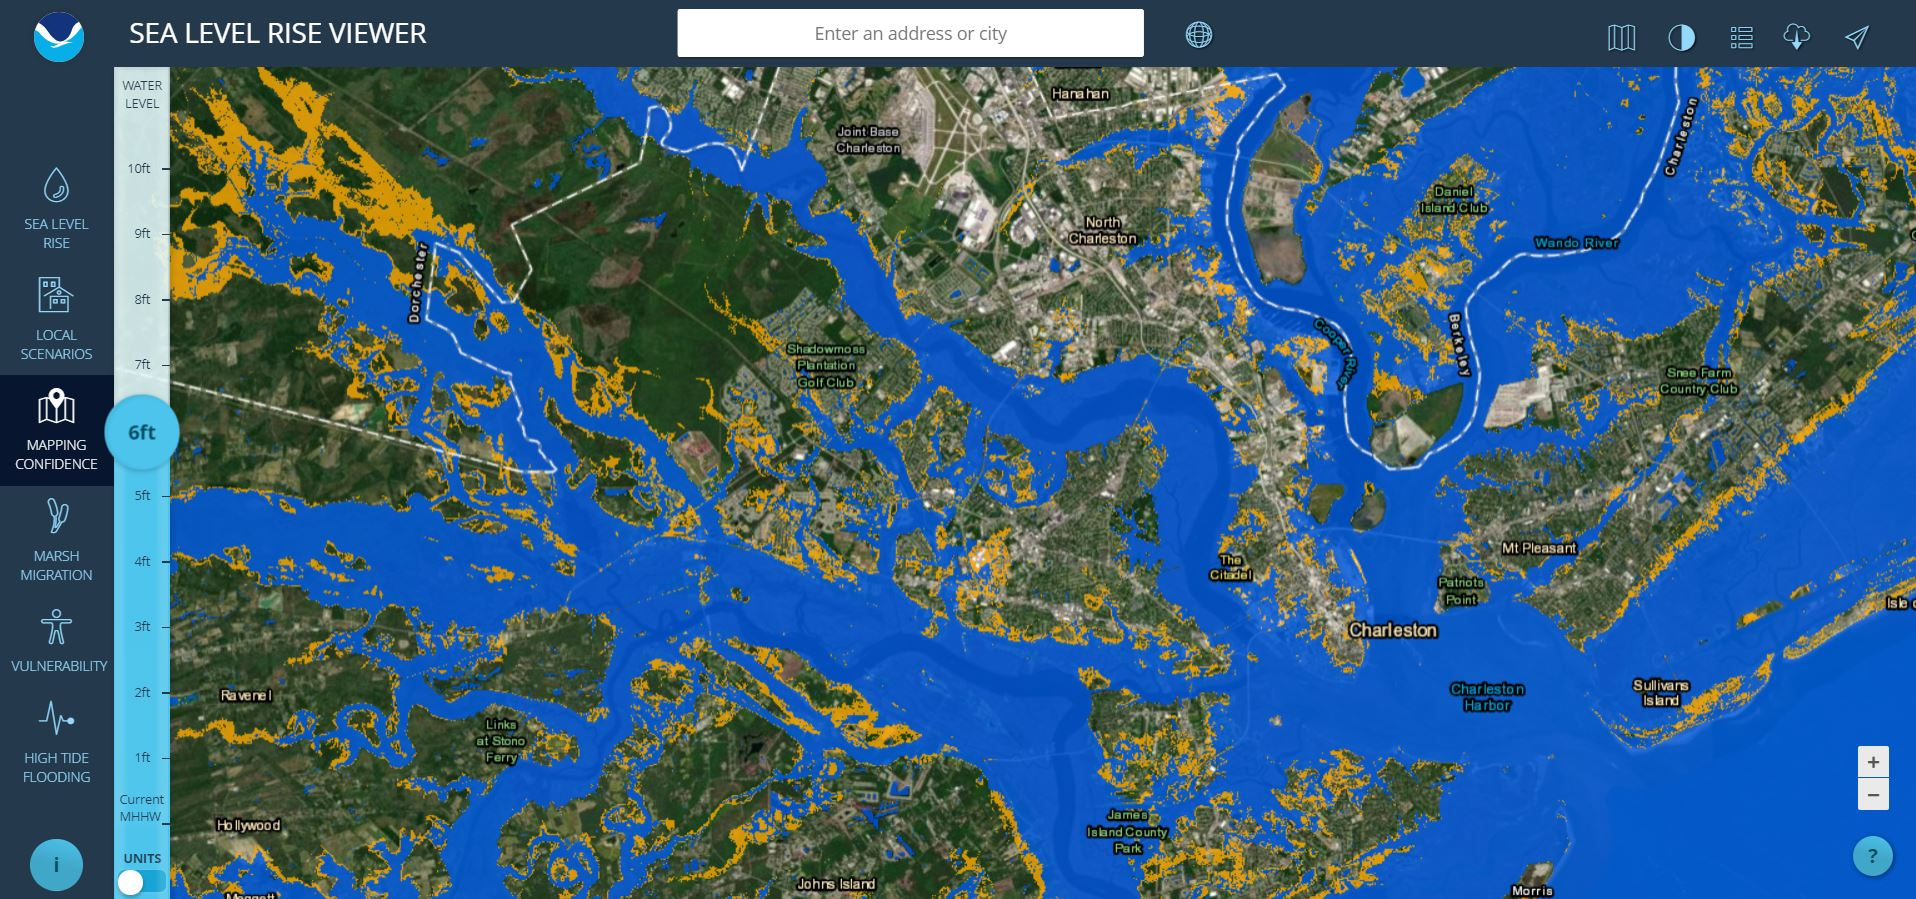 Sea Level Rise Viewer - Altitude above sea level map